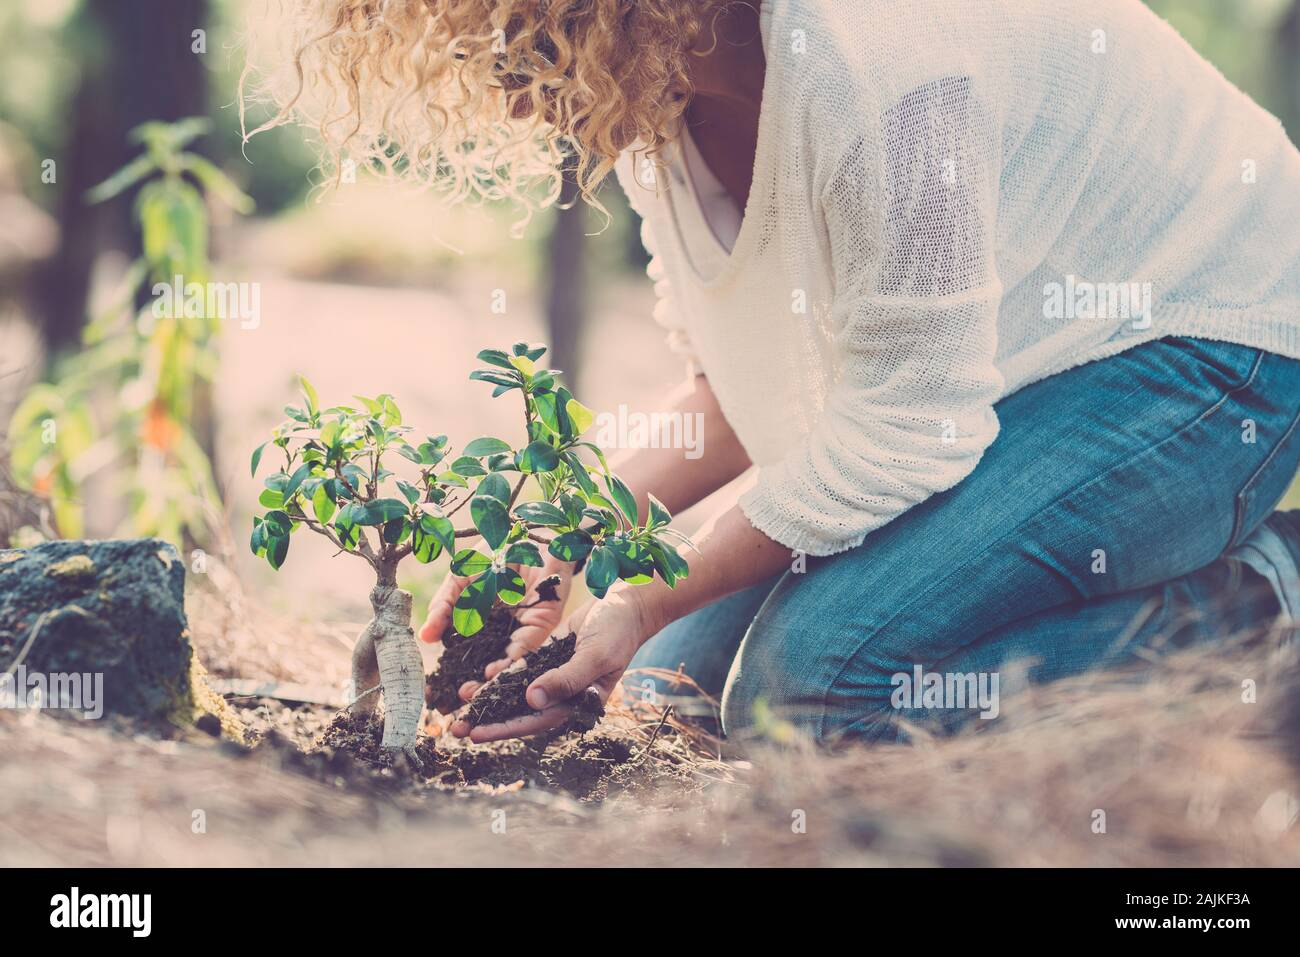 Environment and care for the planet and nature forest concept with lady seeding a new tree on the wood ground - save earth's day lifestyle people Stock Photo